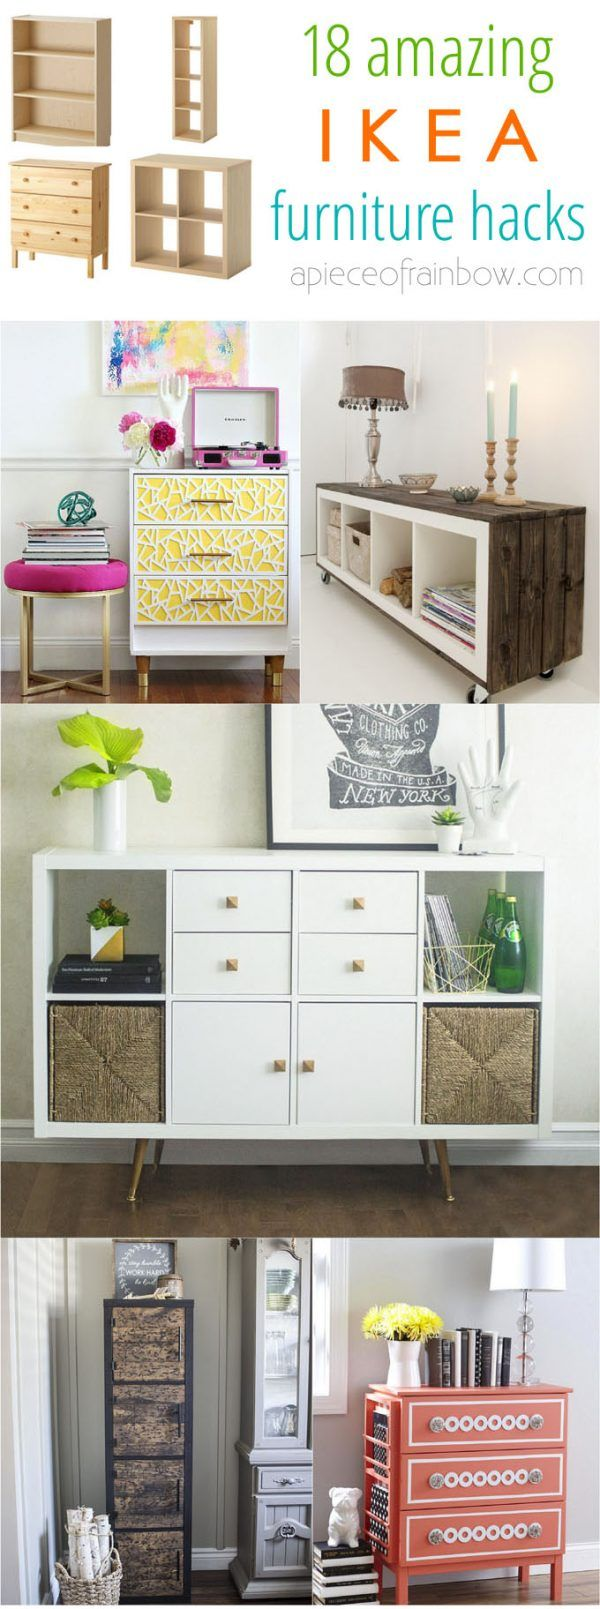 ikea-hacks-custom-furniture-apieceofrainbow-13